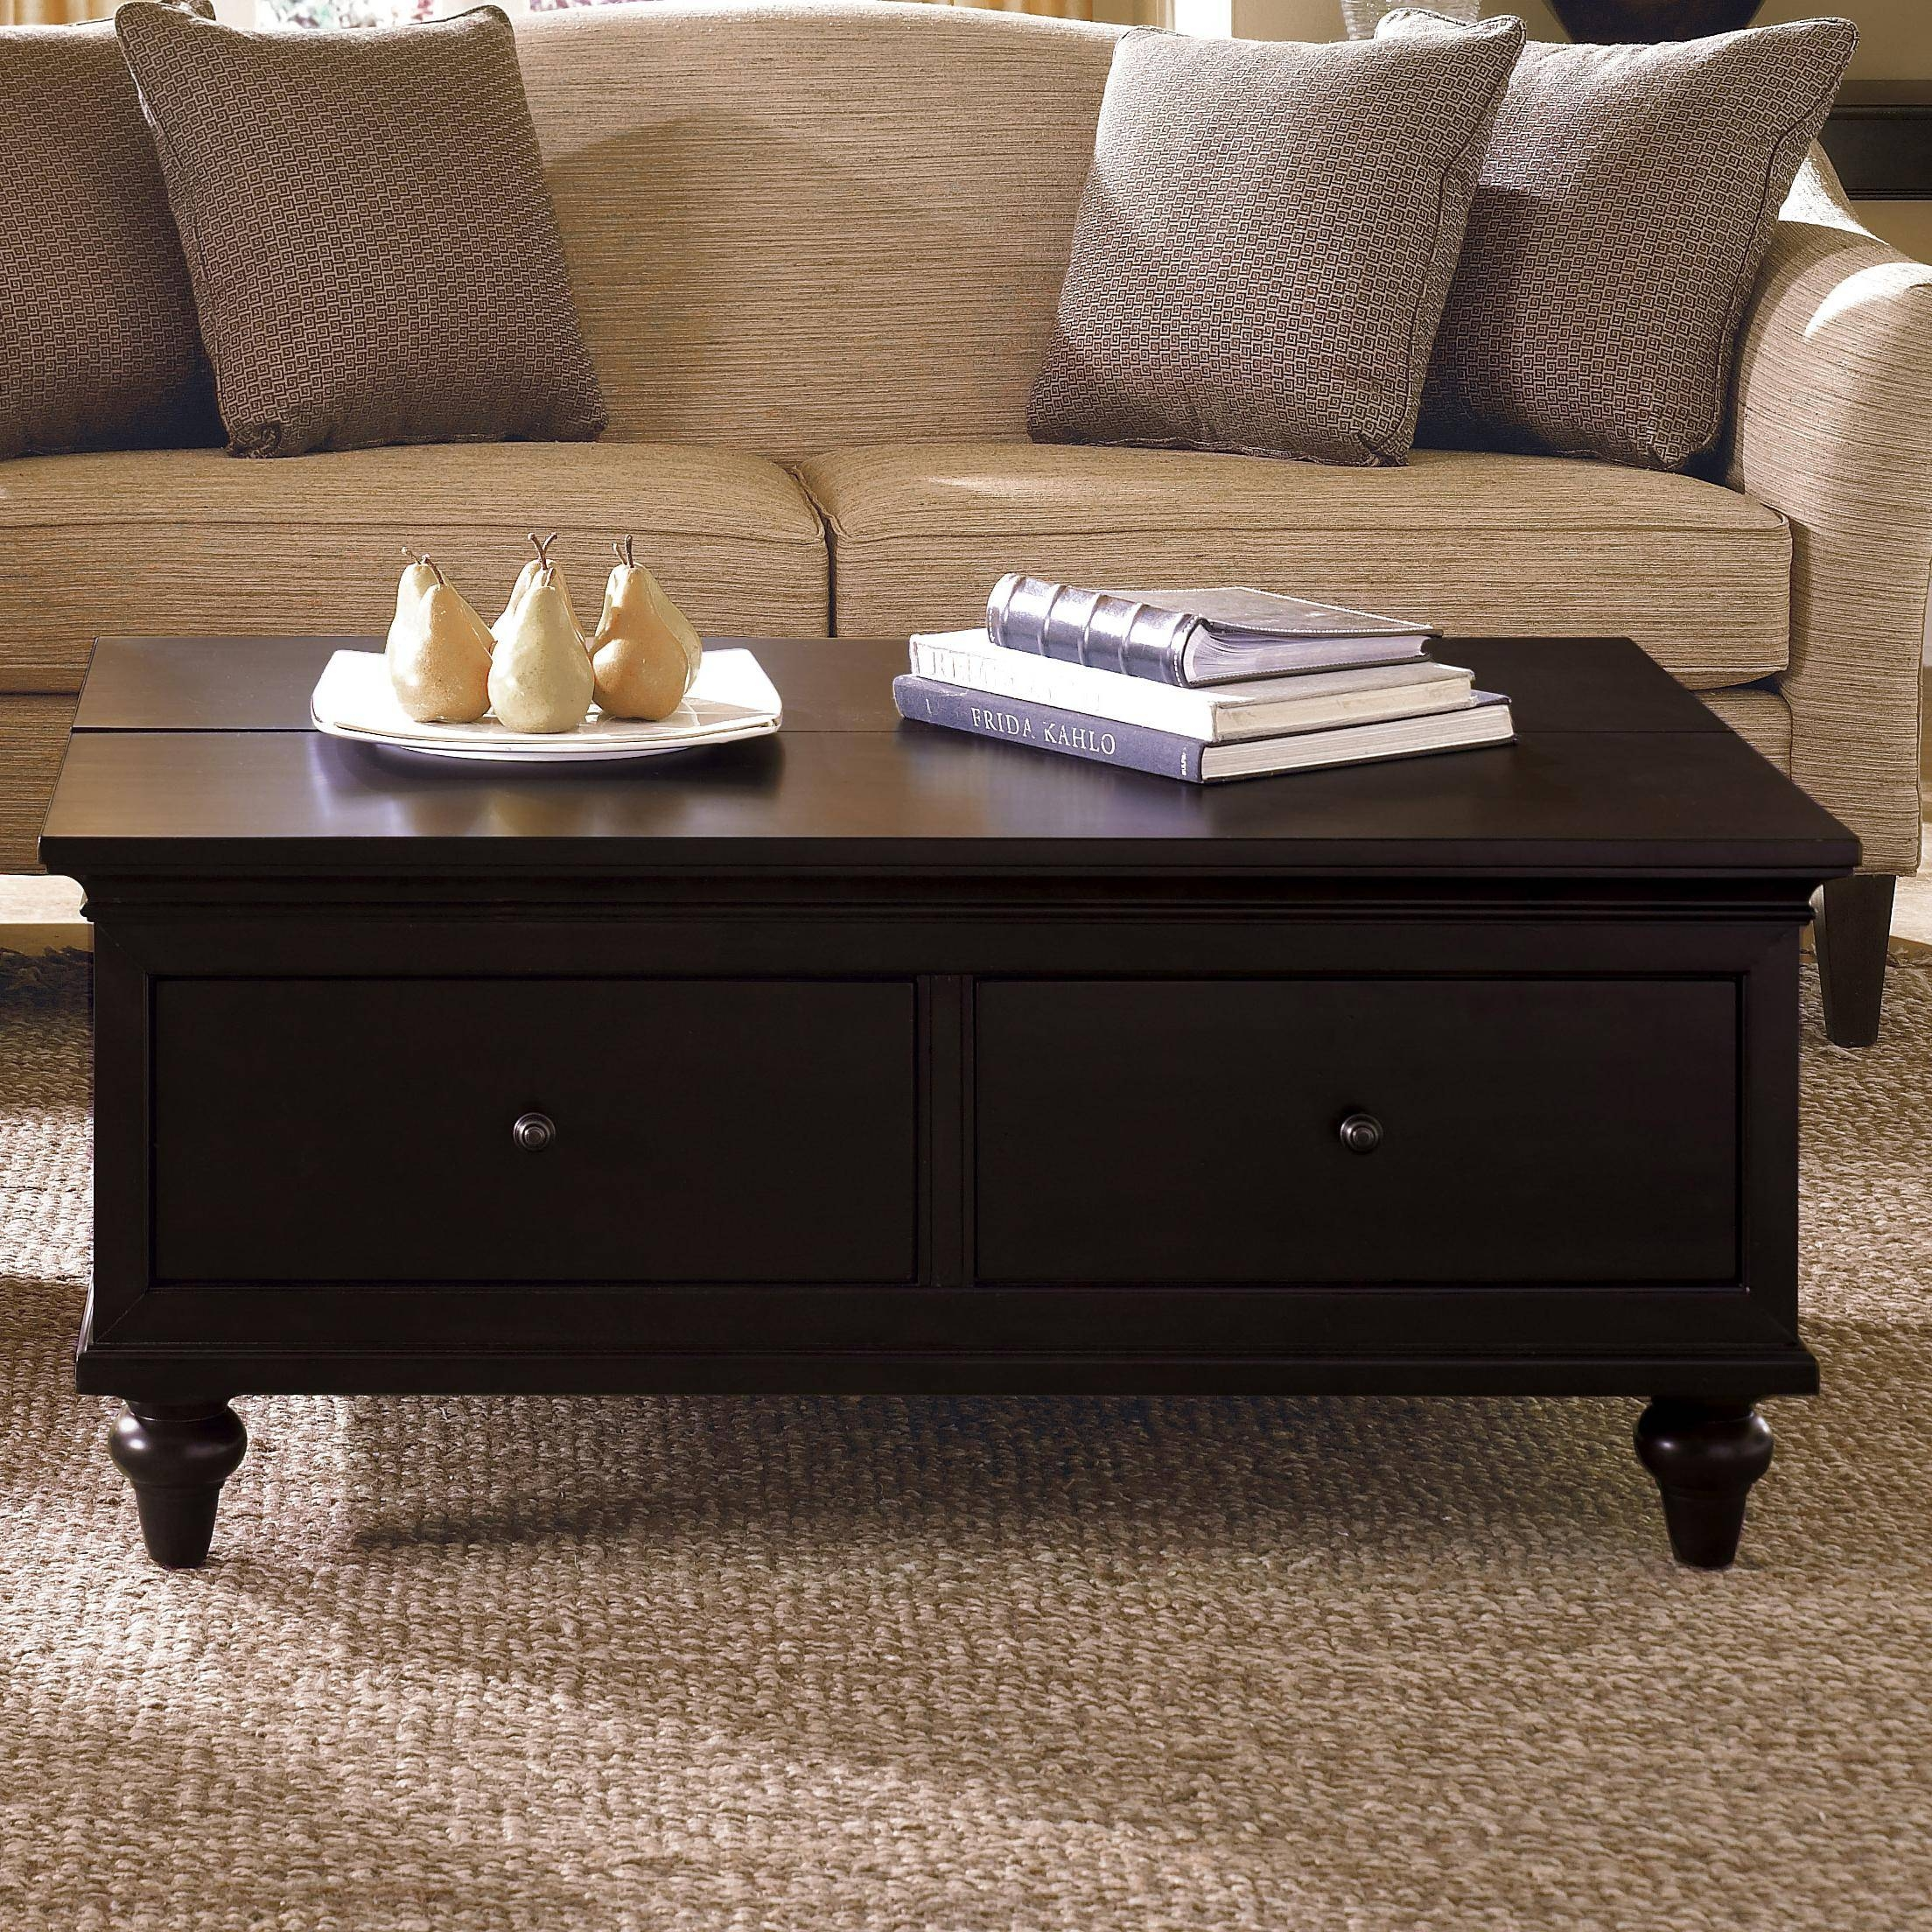 Union Square Wicker Basket Storage Black Coffee Table | Coffee in Coffee Table With Wicker Basket Storage (Image 24 of 30)